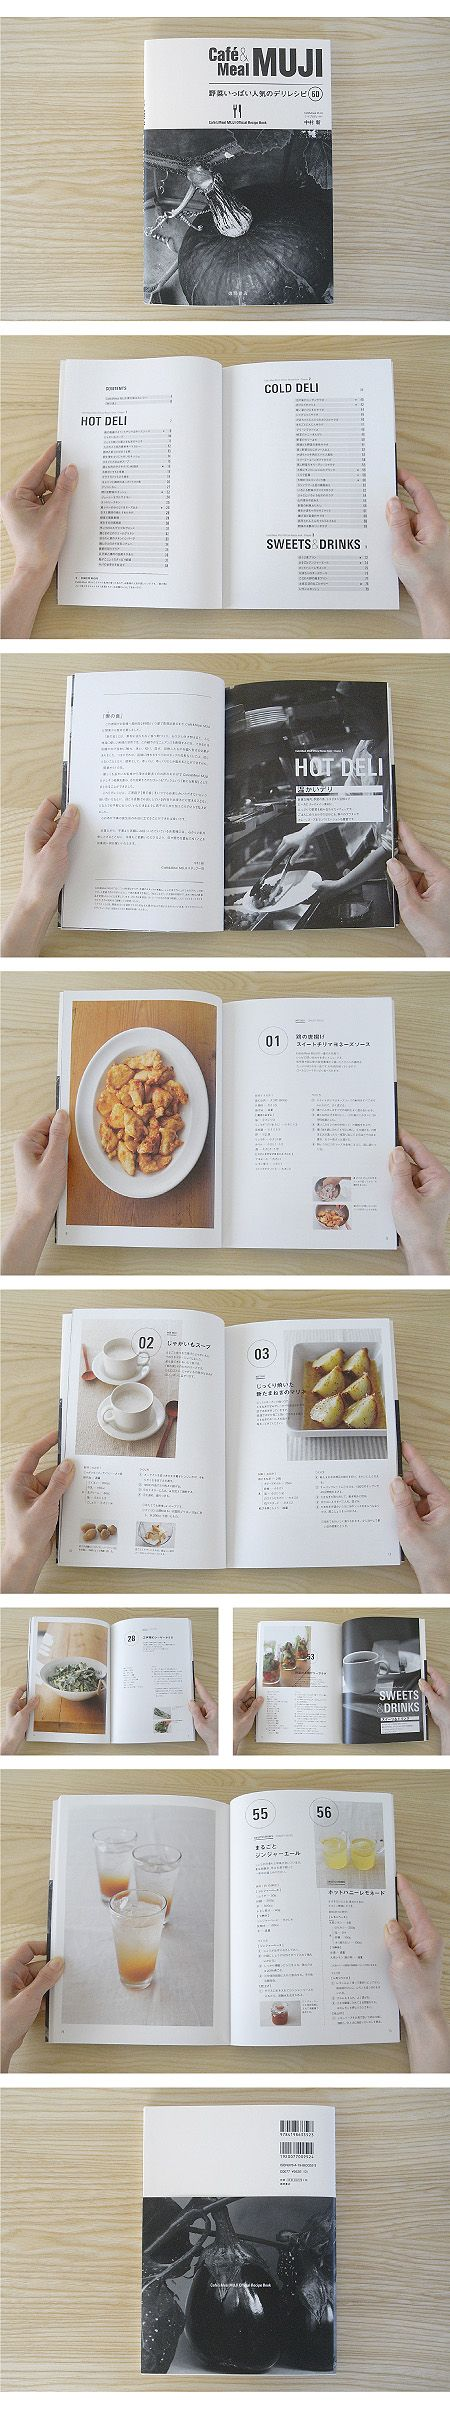 Sleek mix of creatively shot product images and clean type #muji